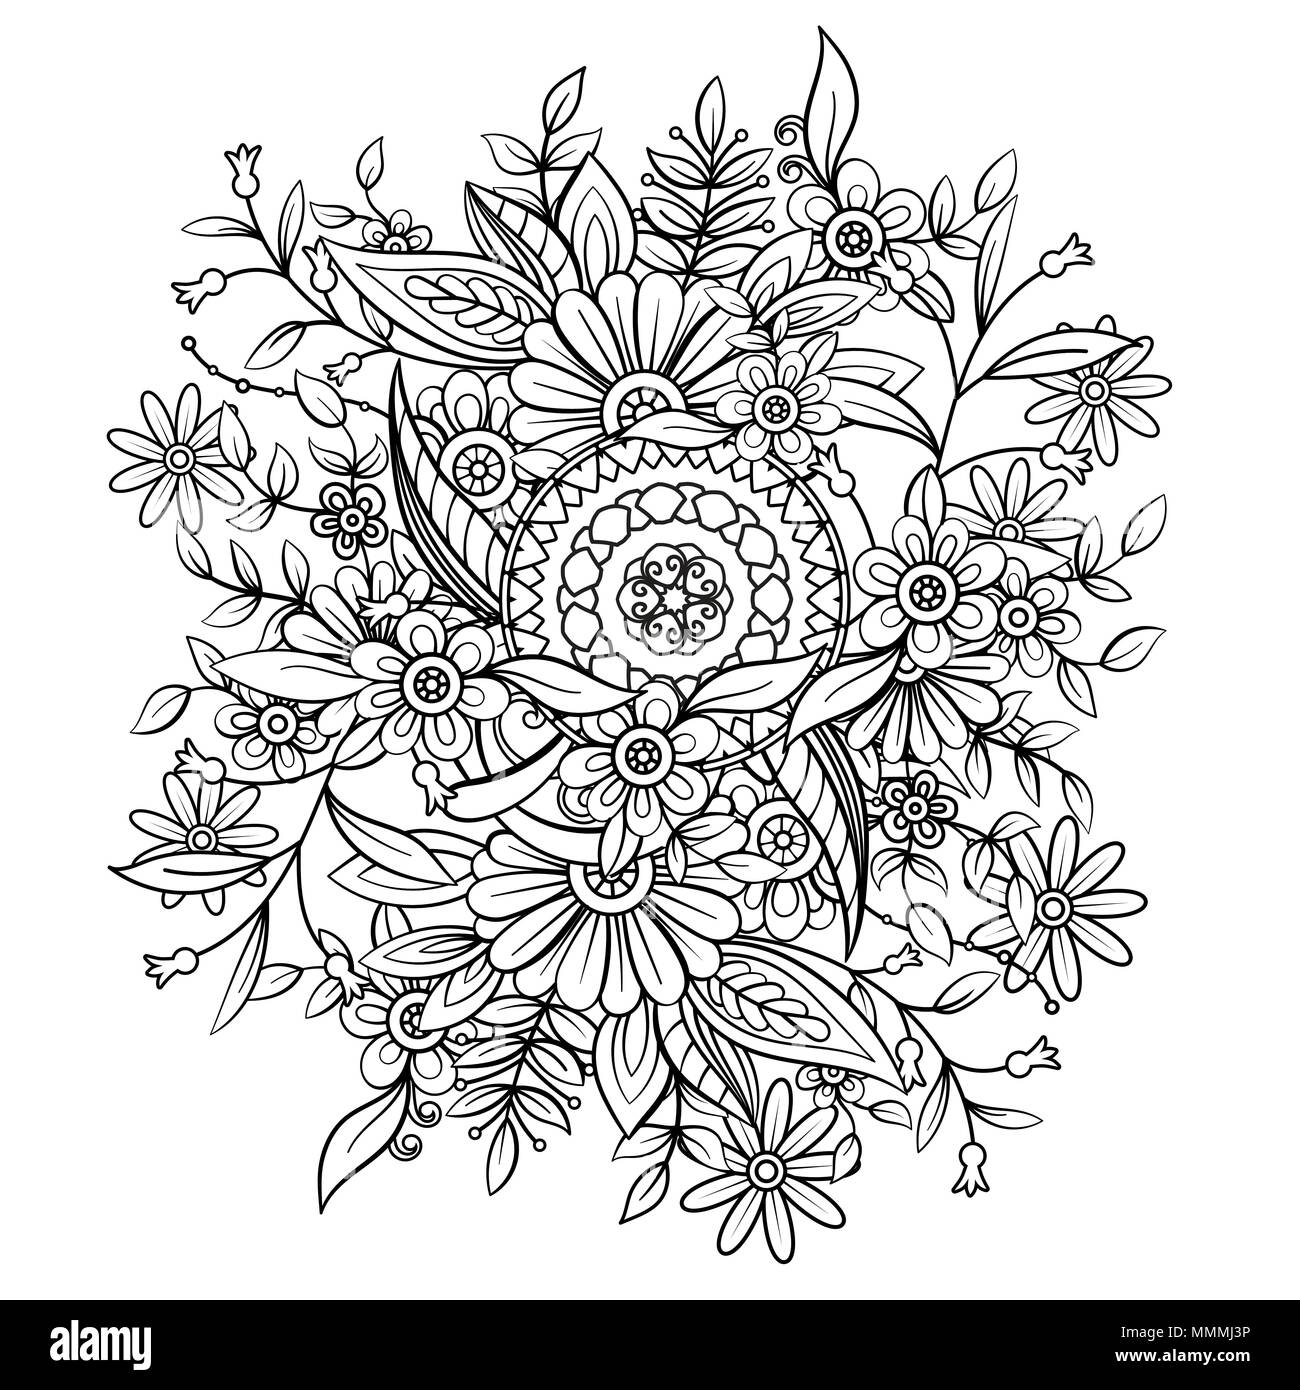 Floral Pattern In Black And White Adult Coloring Book Page With